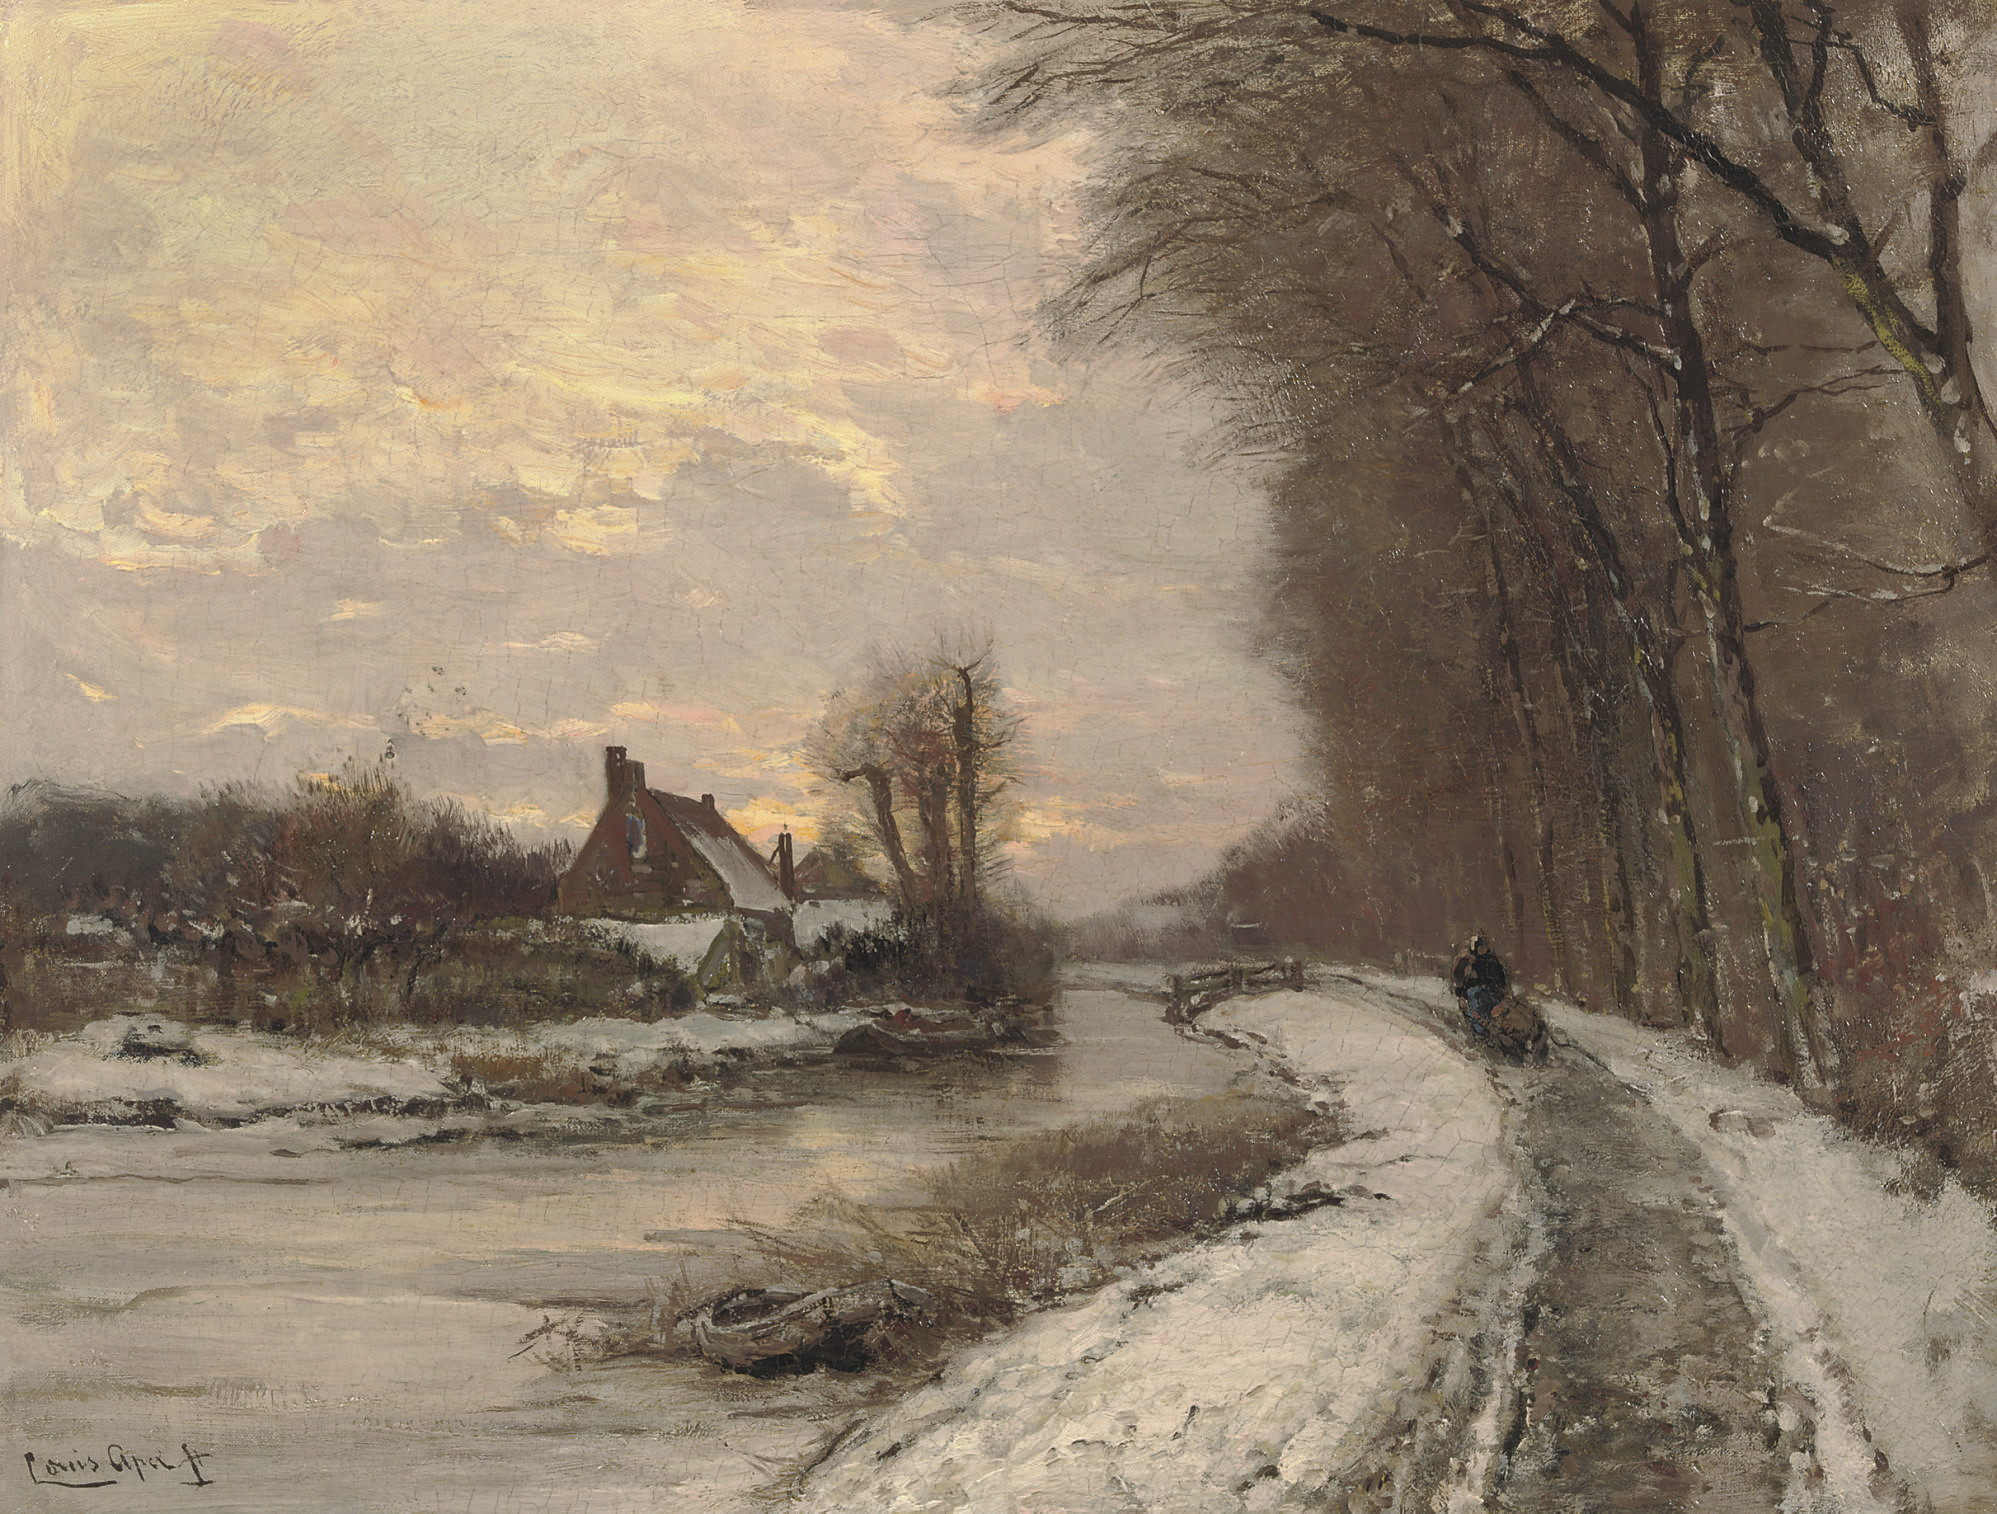 Walking along a water-way in winter